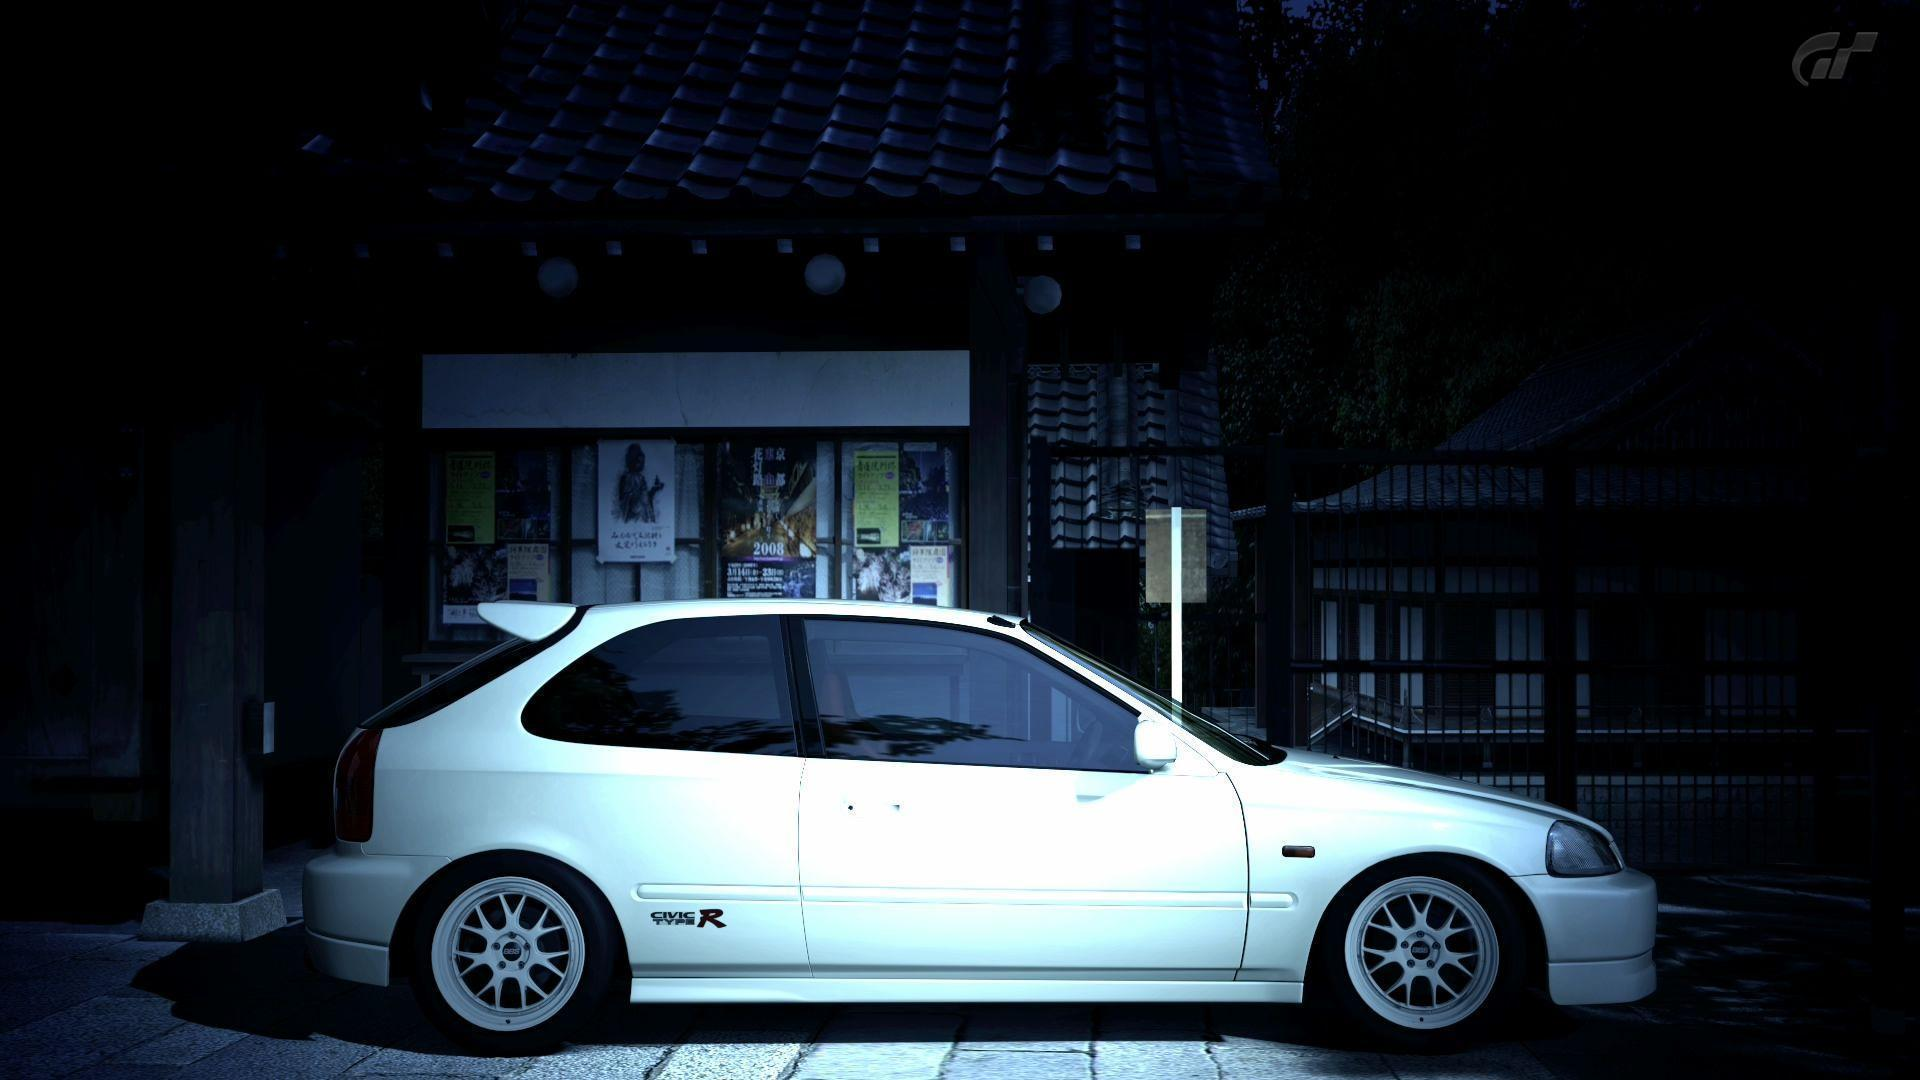 Honda Civic Ek Wallpapers